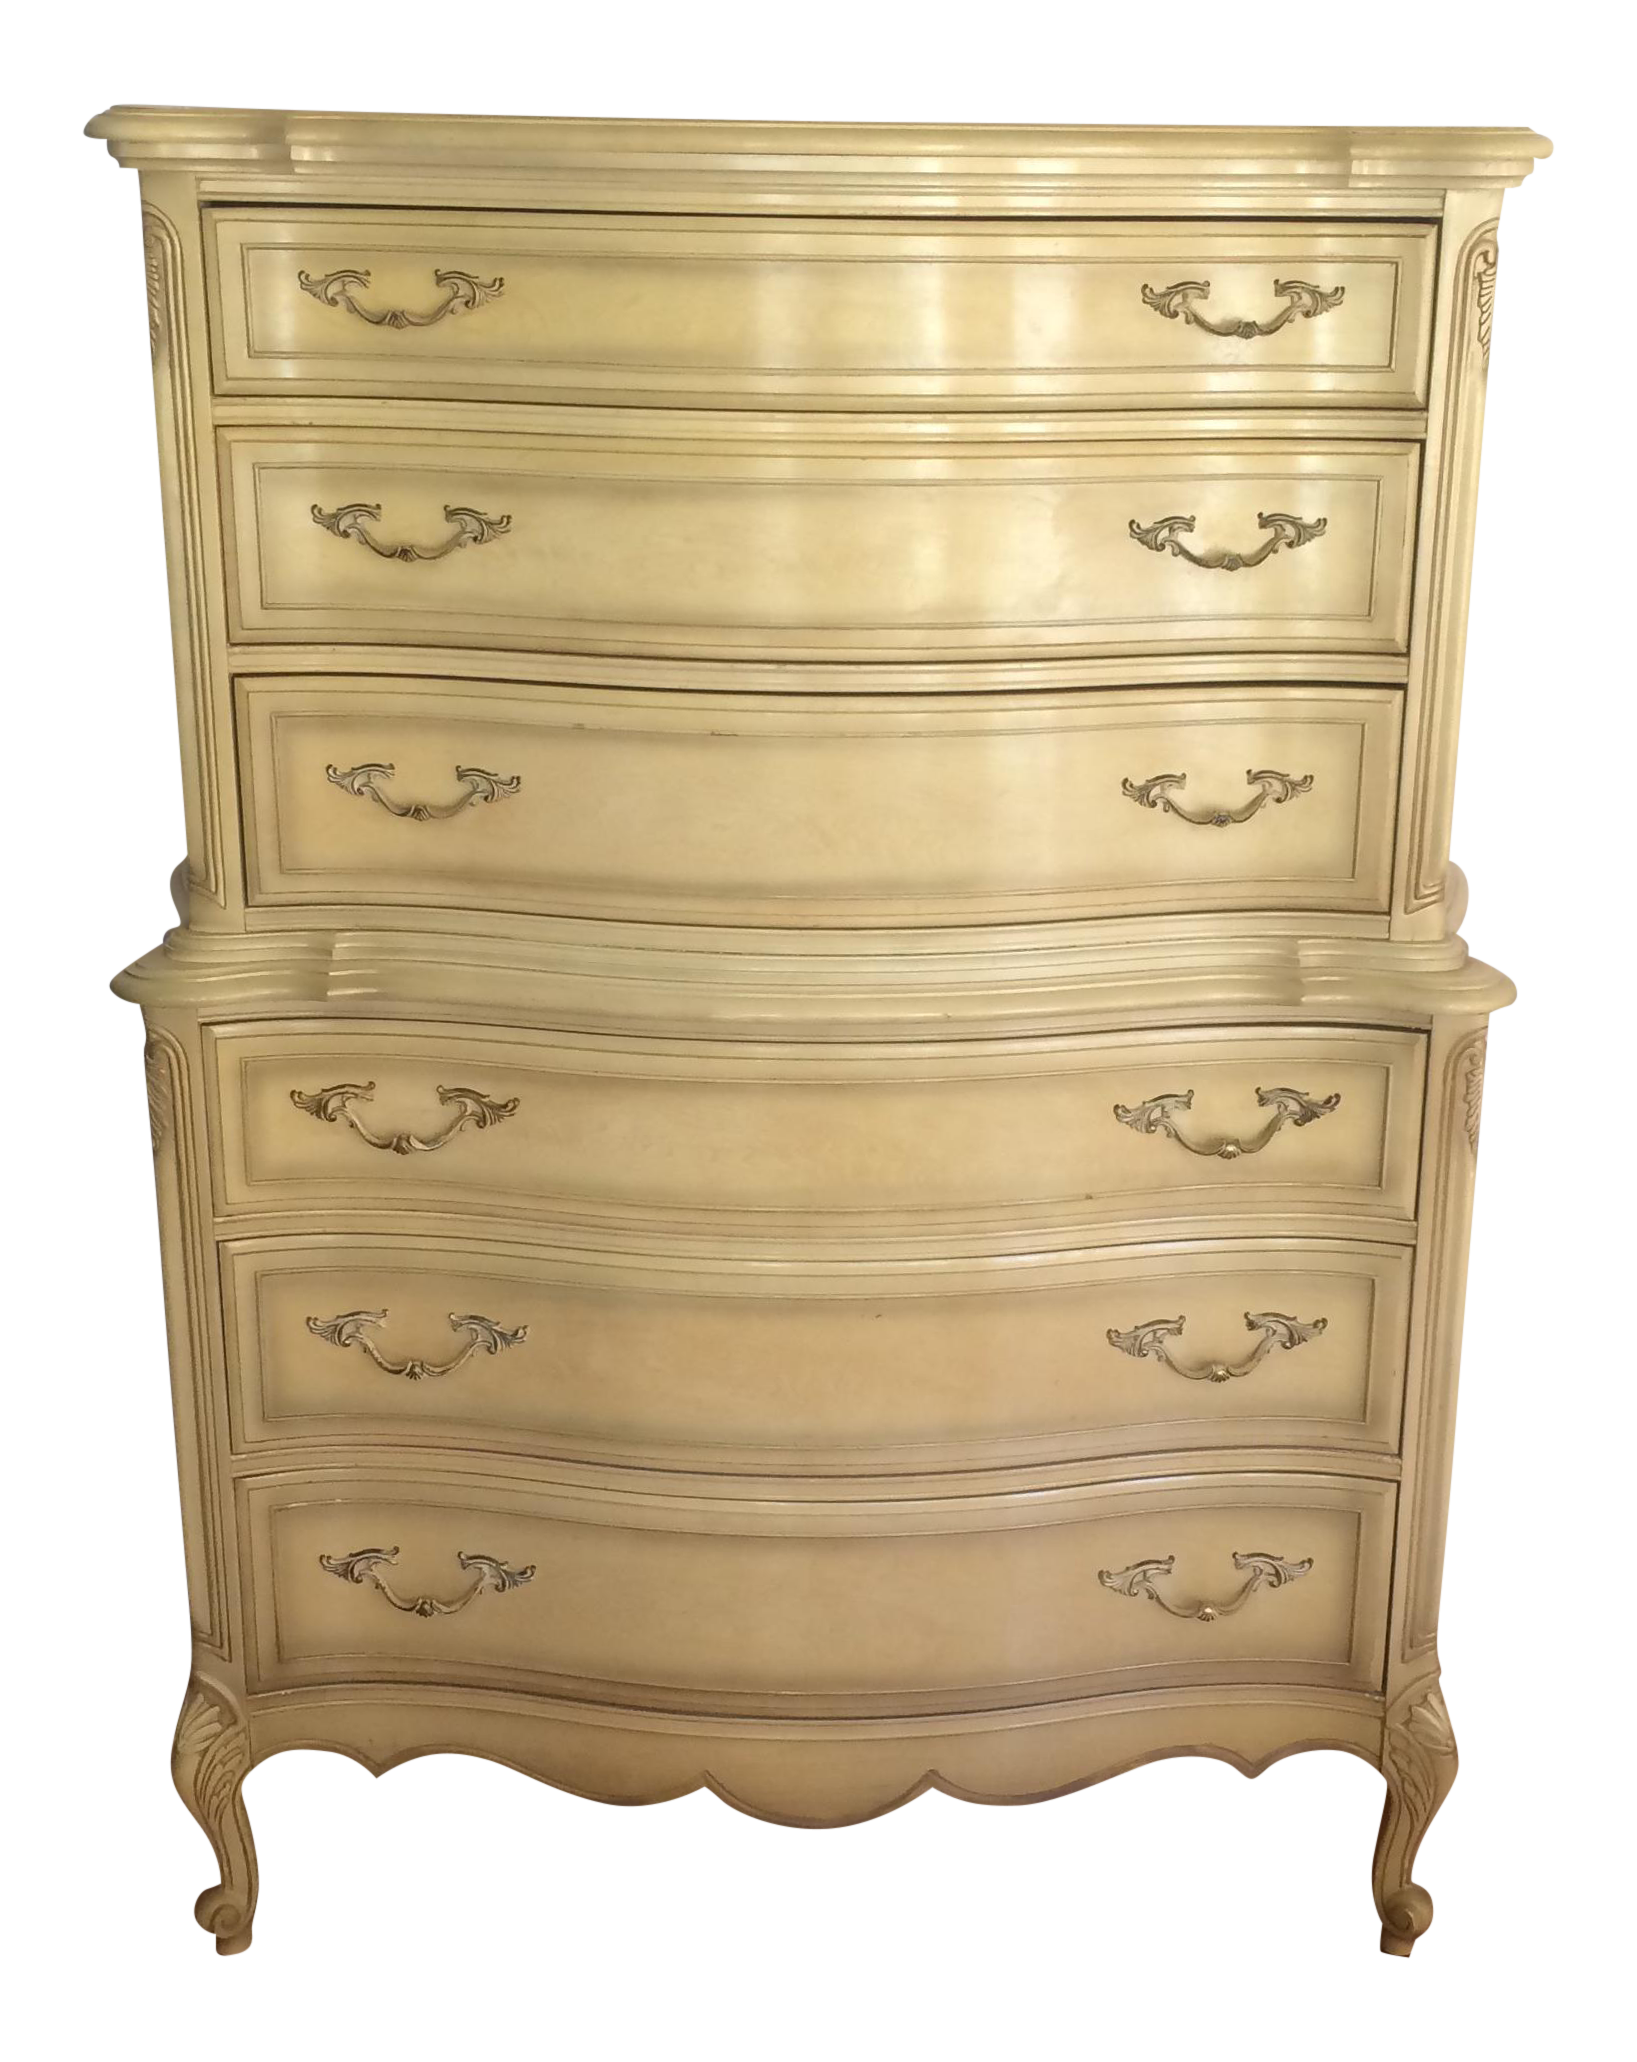 jpg royalty free library Appealing antique french dressers. Dresser clipart.